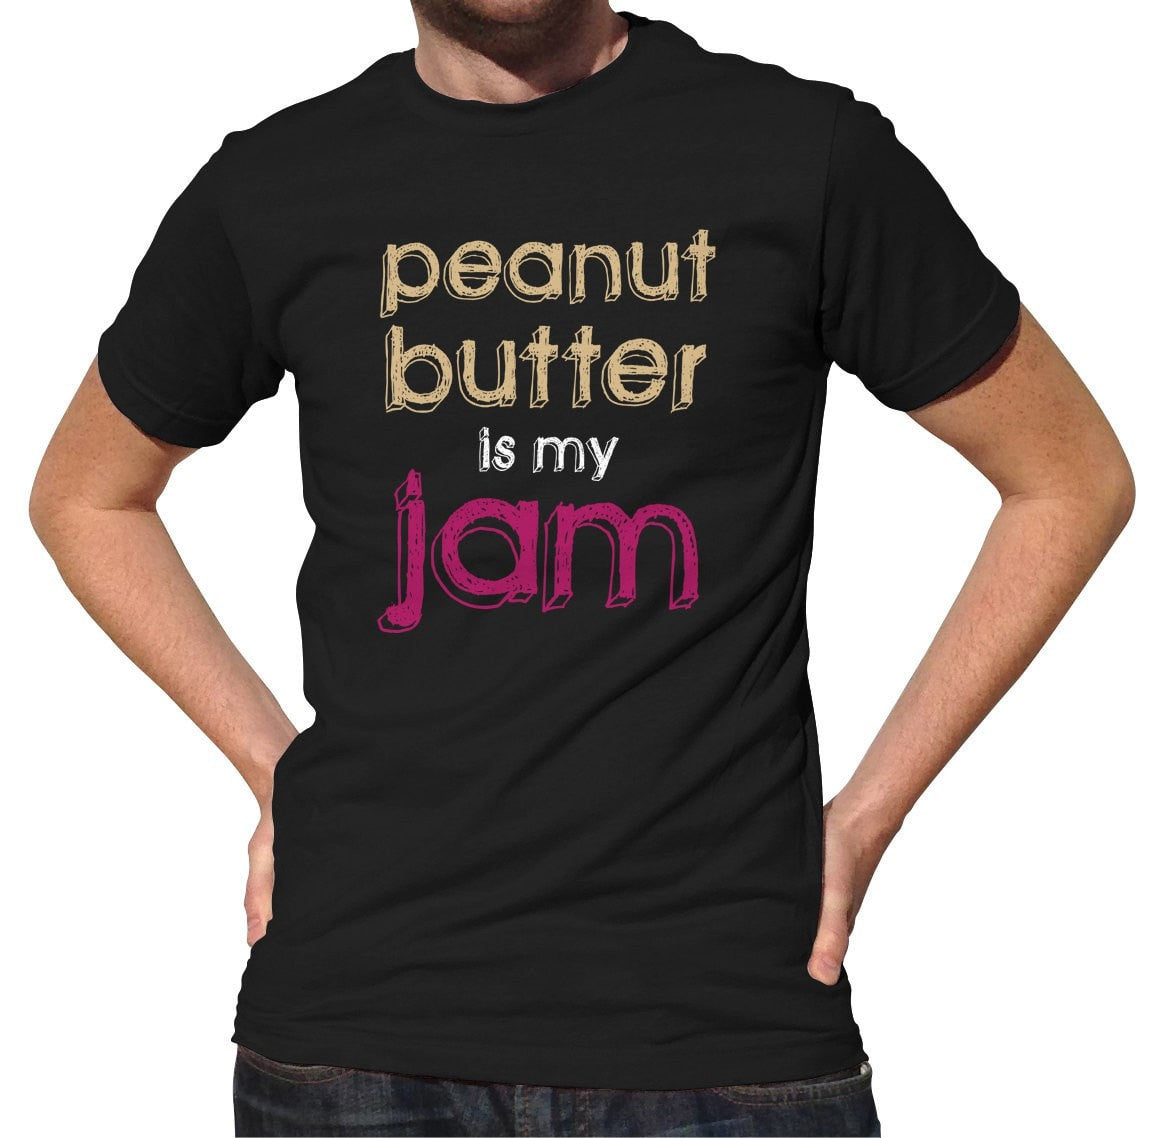 Men's Peanut Butter is My Jam T-Shirt